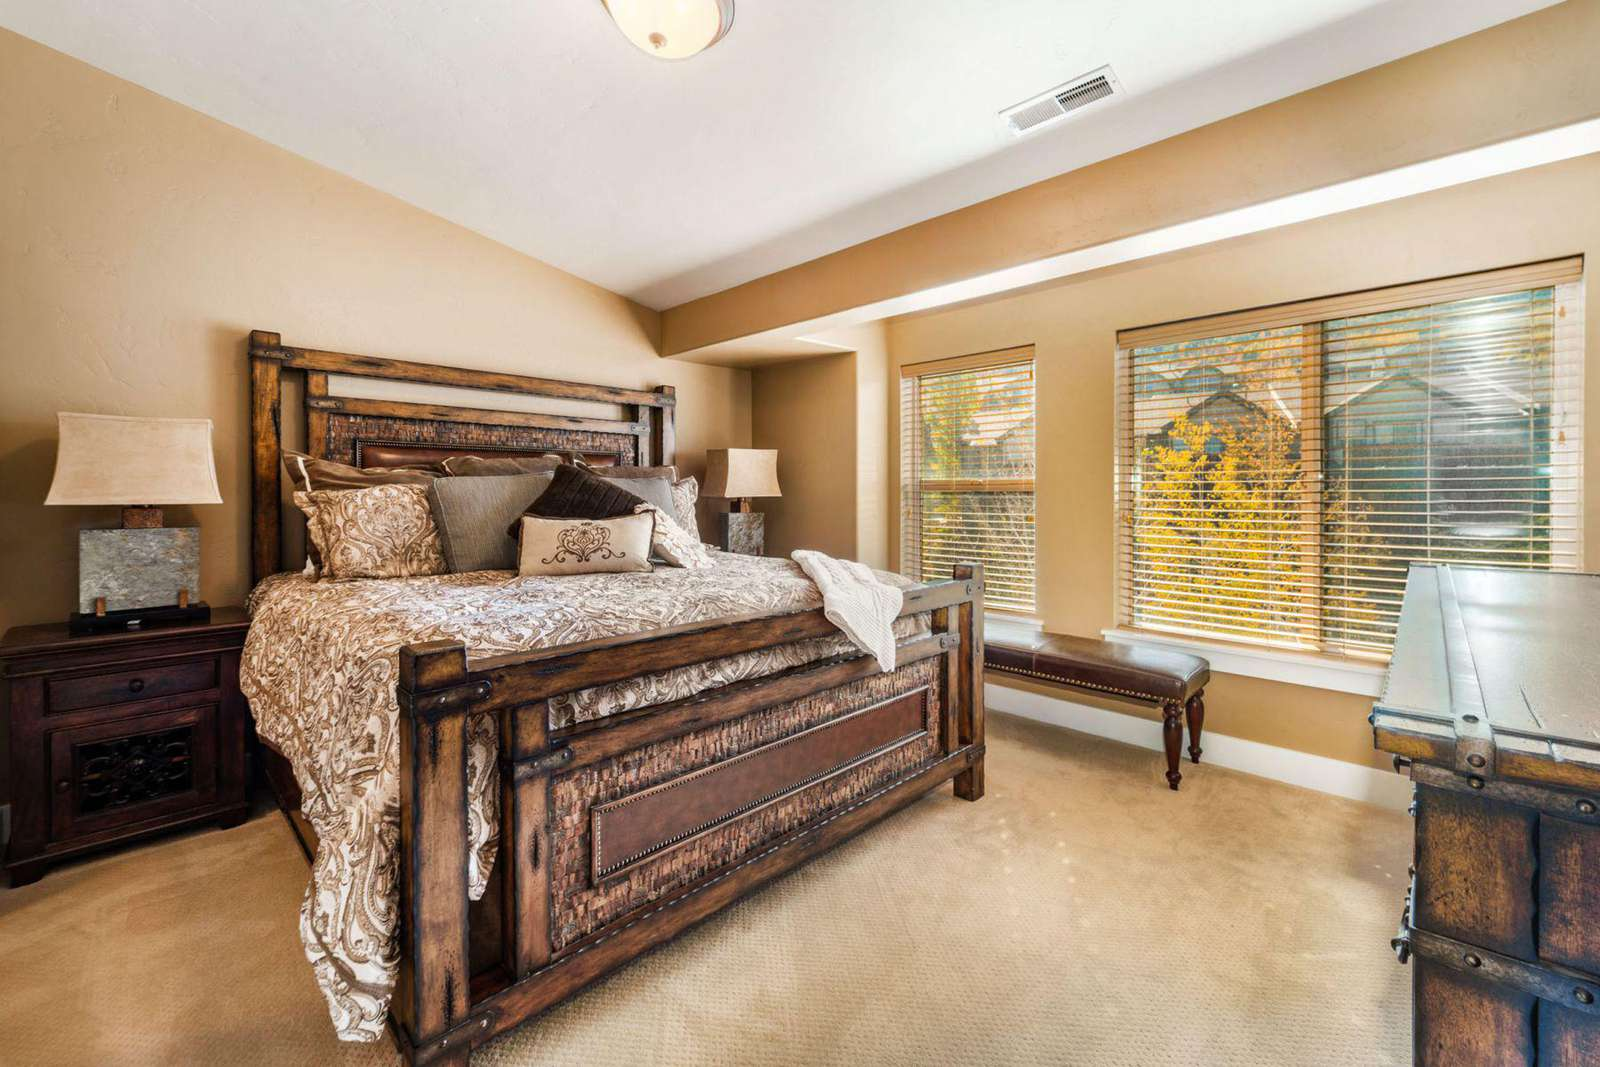 Master bedroom equipped with window views